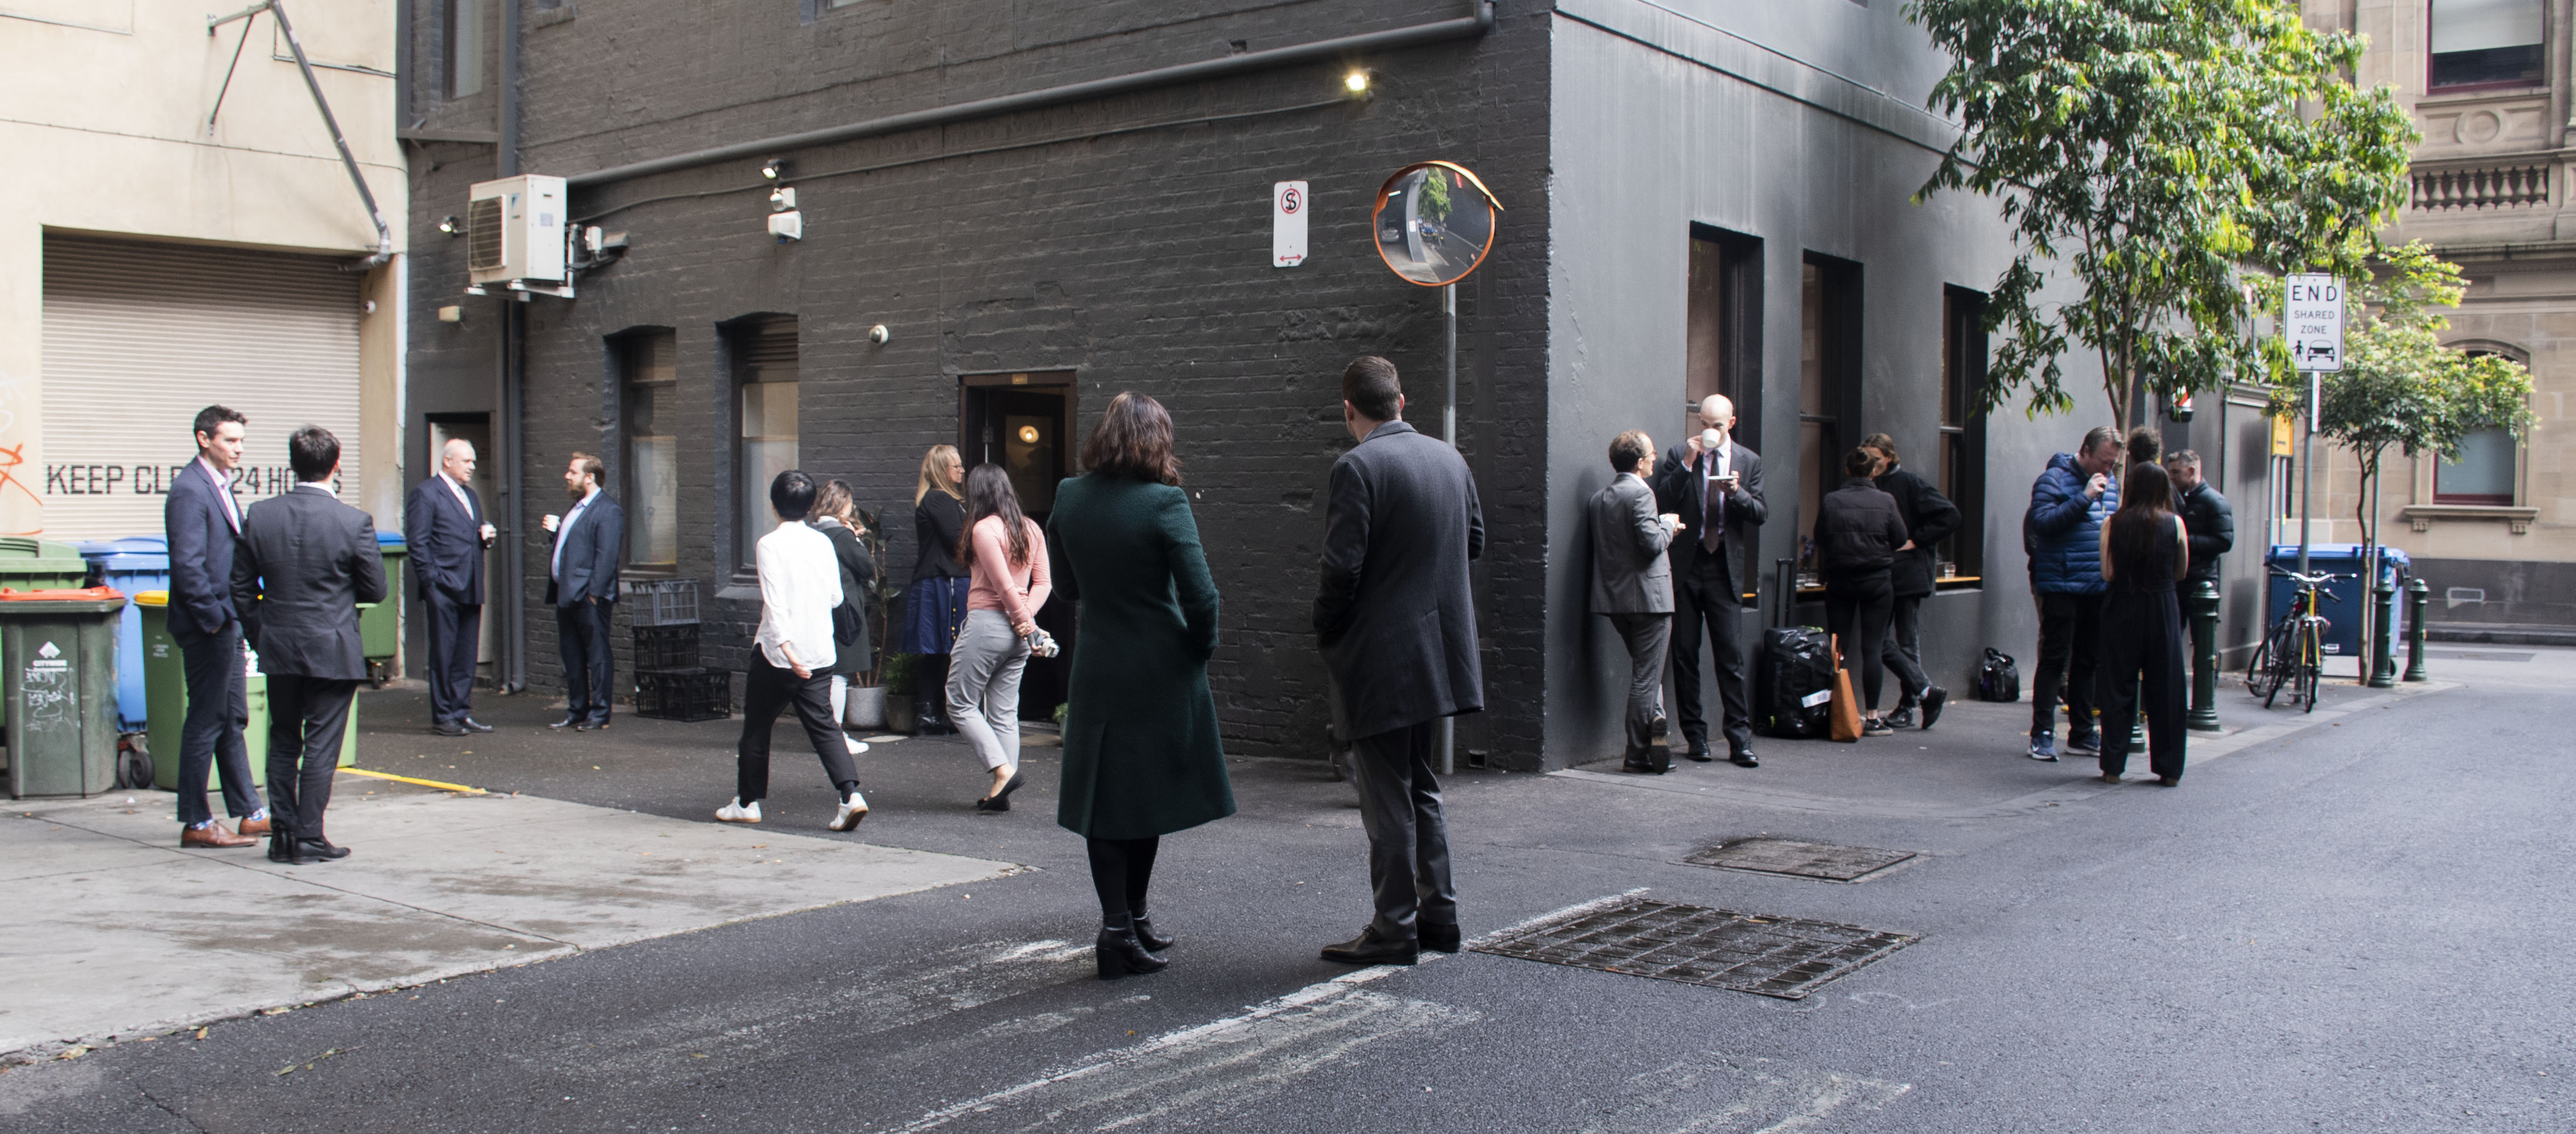 Coffee in Melbourne isn't just a drink. It's a lifestyle. People gather at Patricia Coffee Brewers on Little Bourke Street to drink coffee every workday morning. There's never enough space to sit in the store, but Melburnians don't mind enjoying their coffee outside.